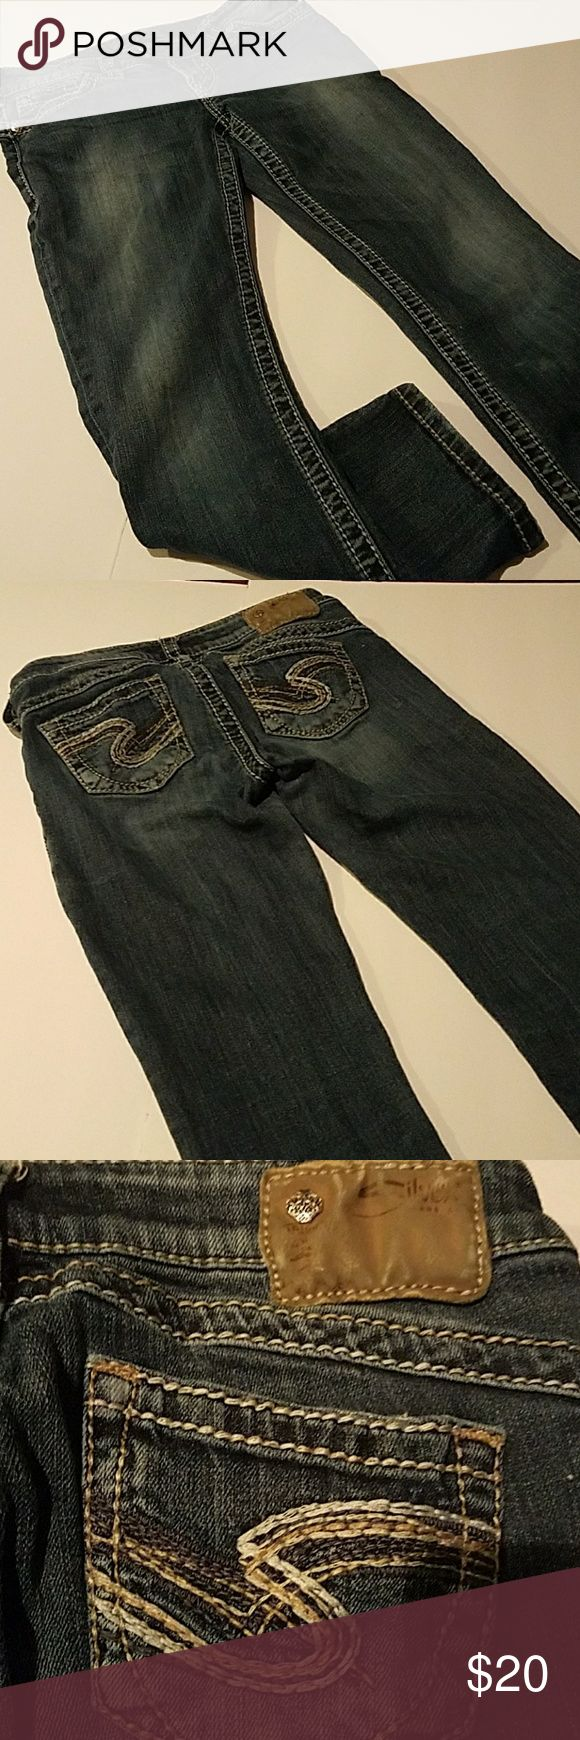 """Silver Jeans Tuesday Capri's Women's Silver Brand Tuesday 16.5"""" Capri's.  Sz. 26 Great Condition. Silver Jeans Jeans Ankle & Cropped"""